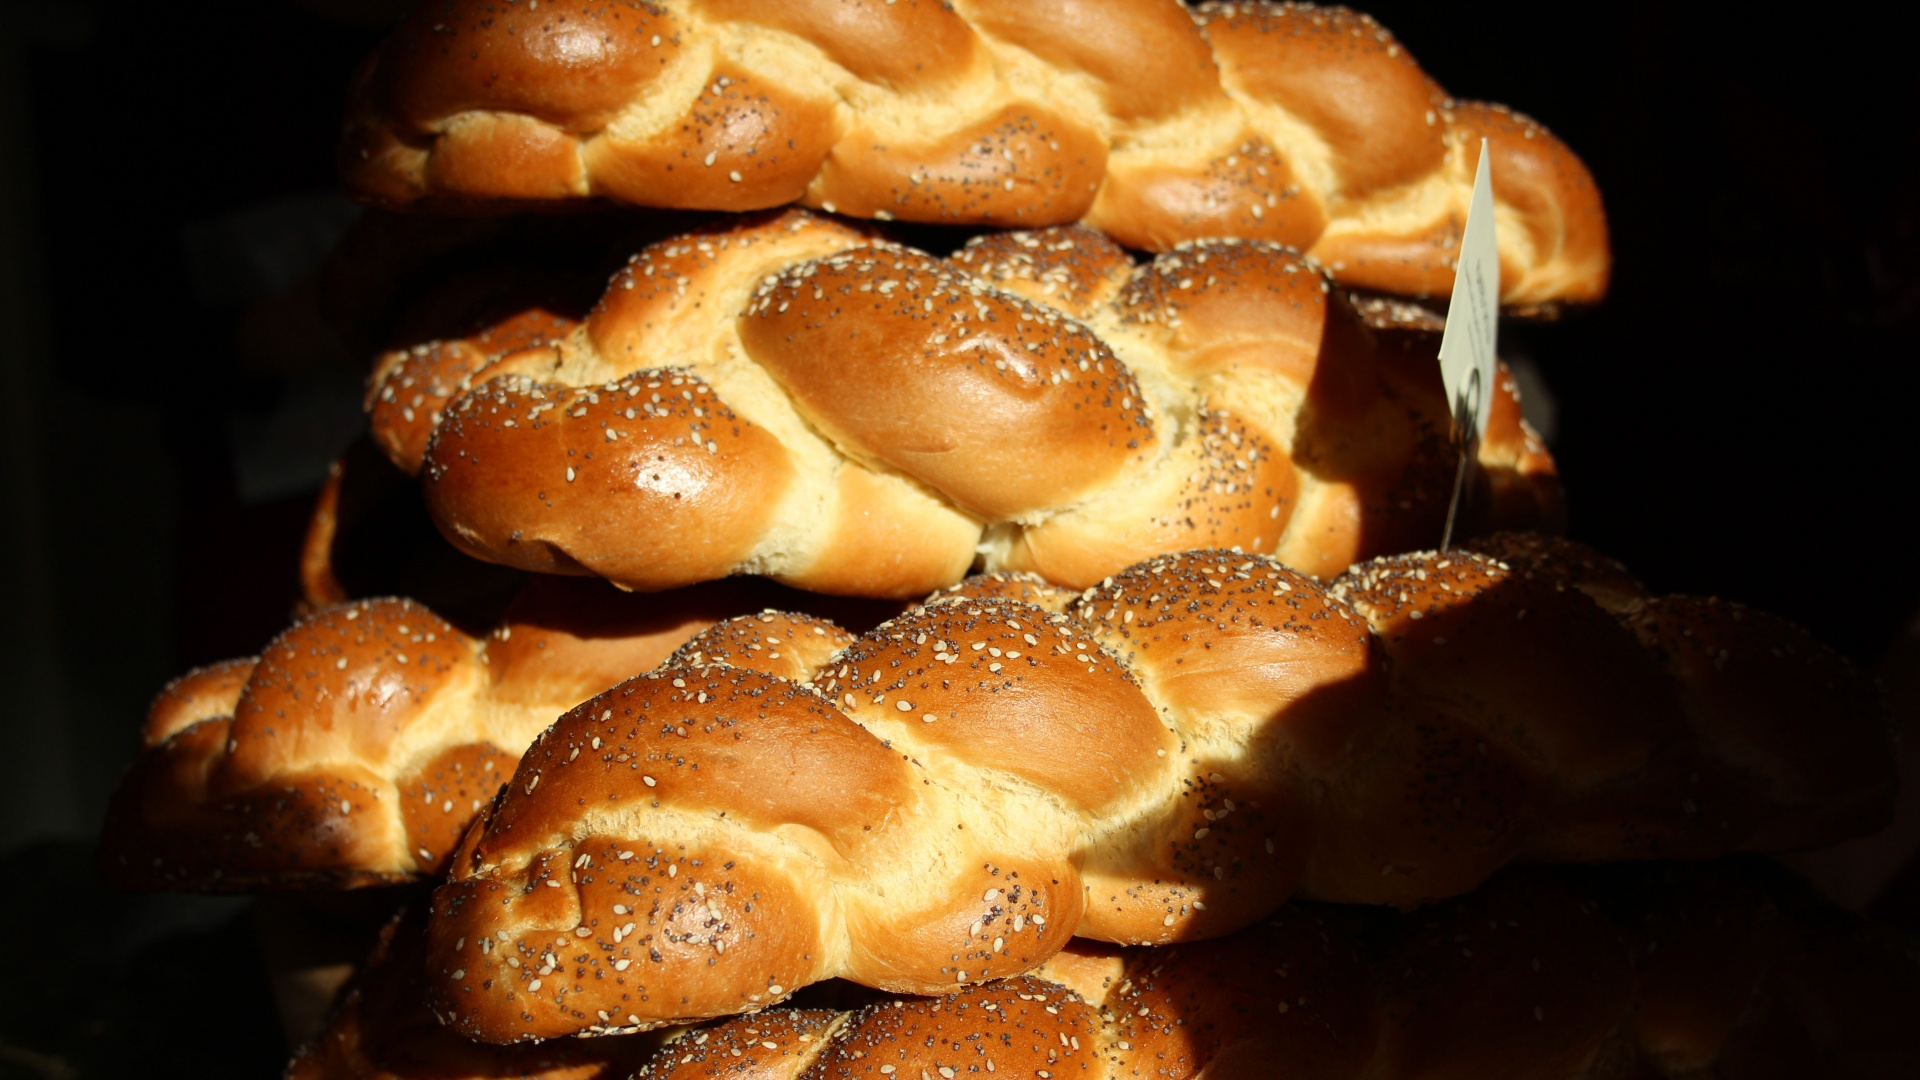 Challah bread from GAIL's Bakery